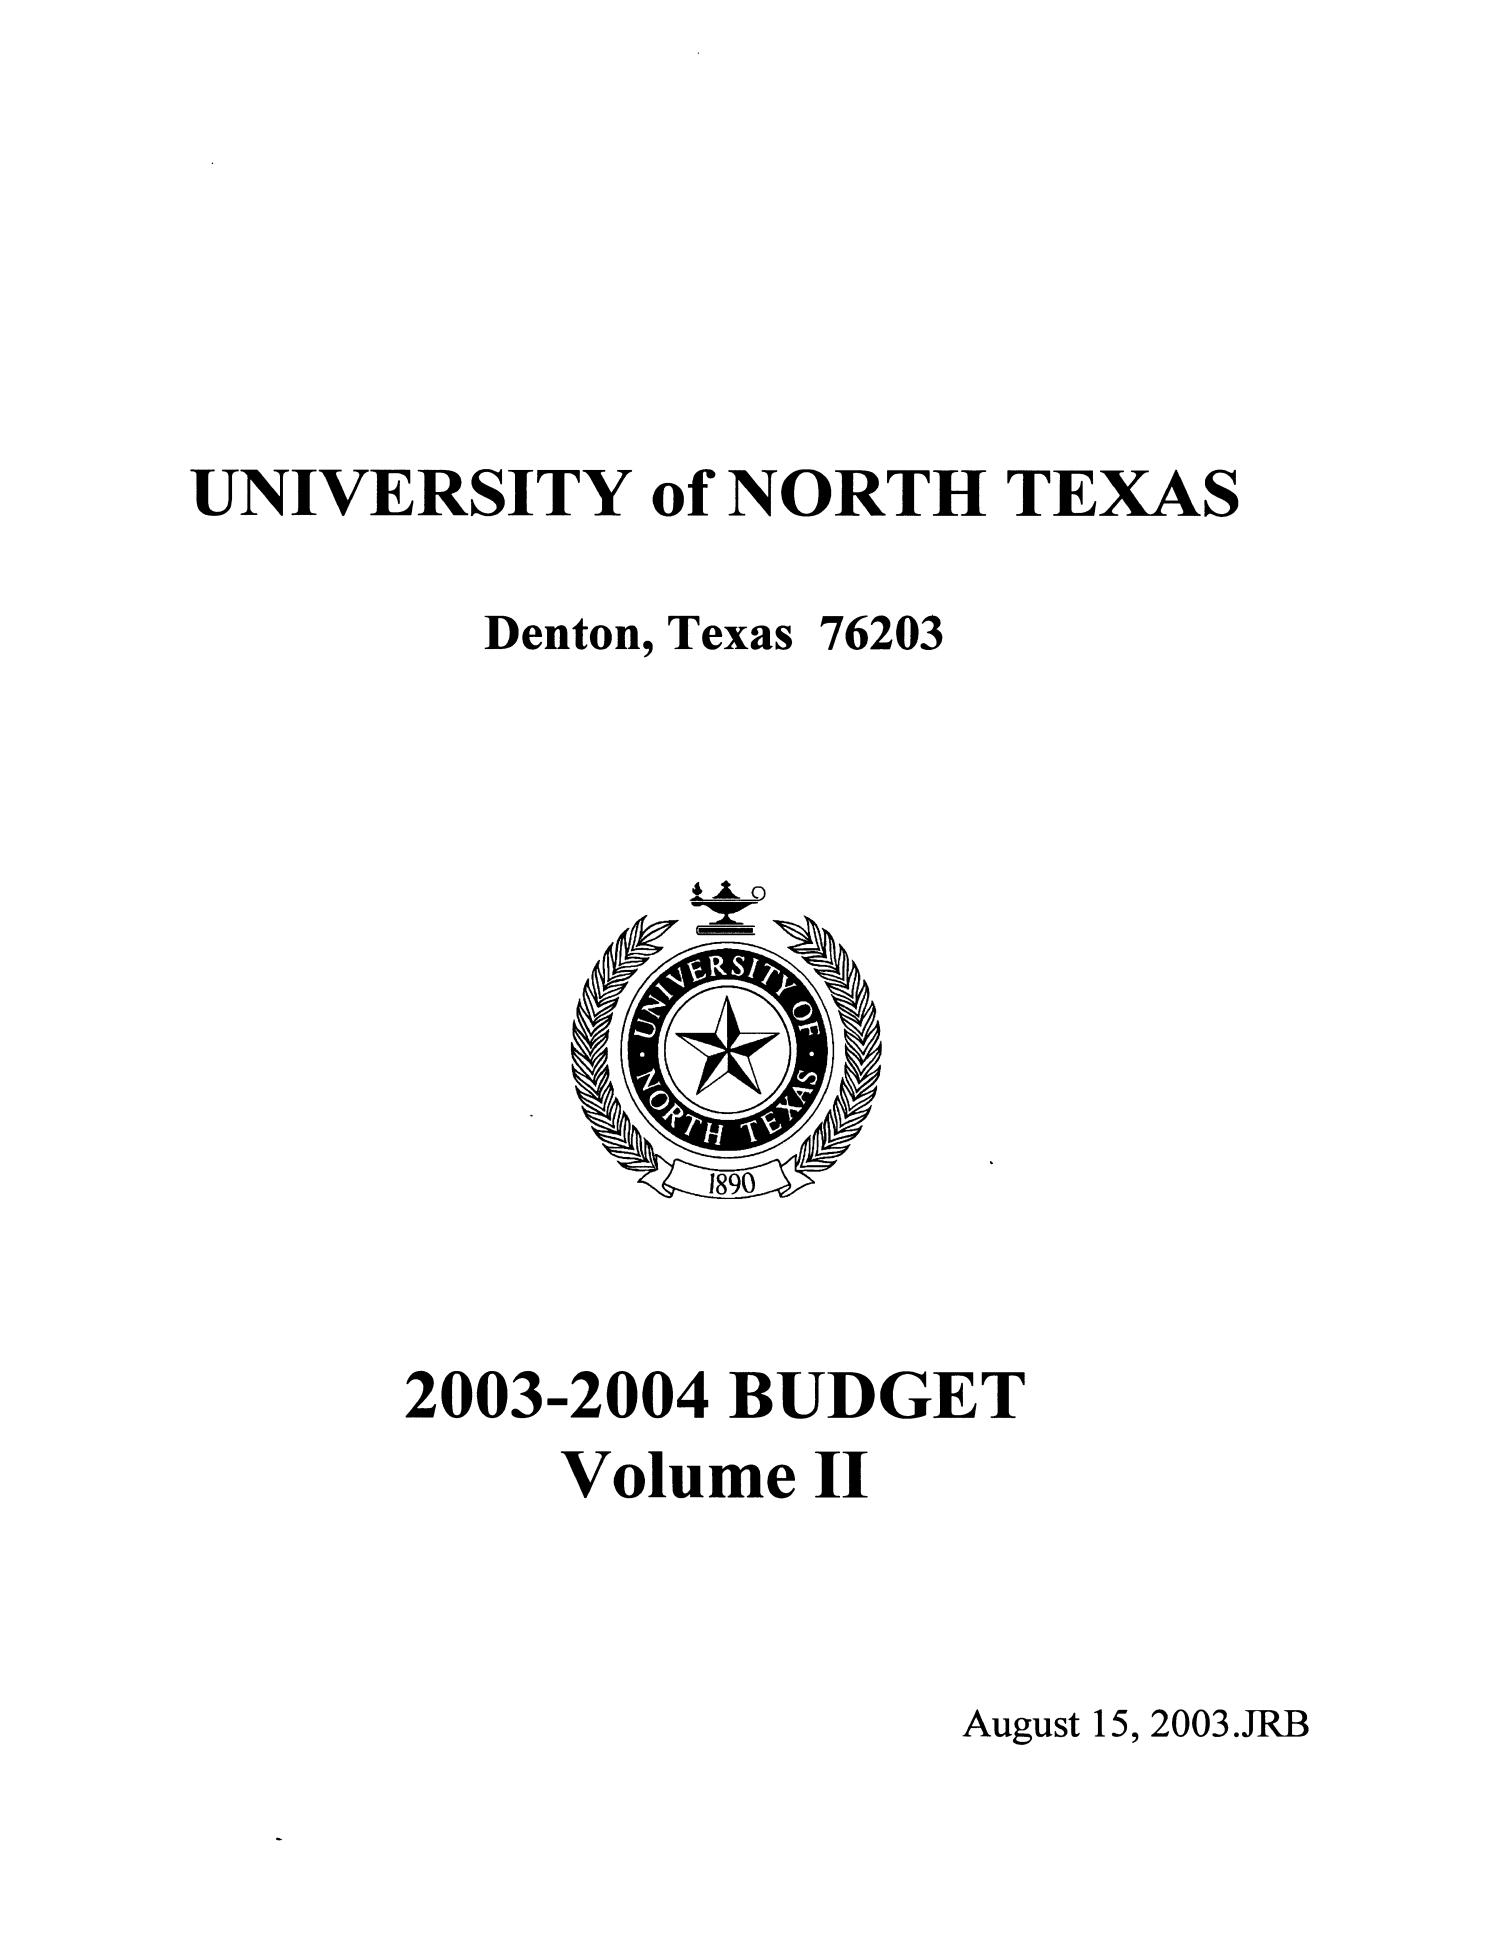 University of North Texas Budget: 2003-2004, Volume 2                                                                                                      Title Page